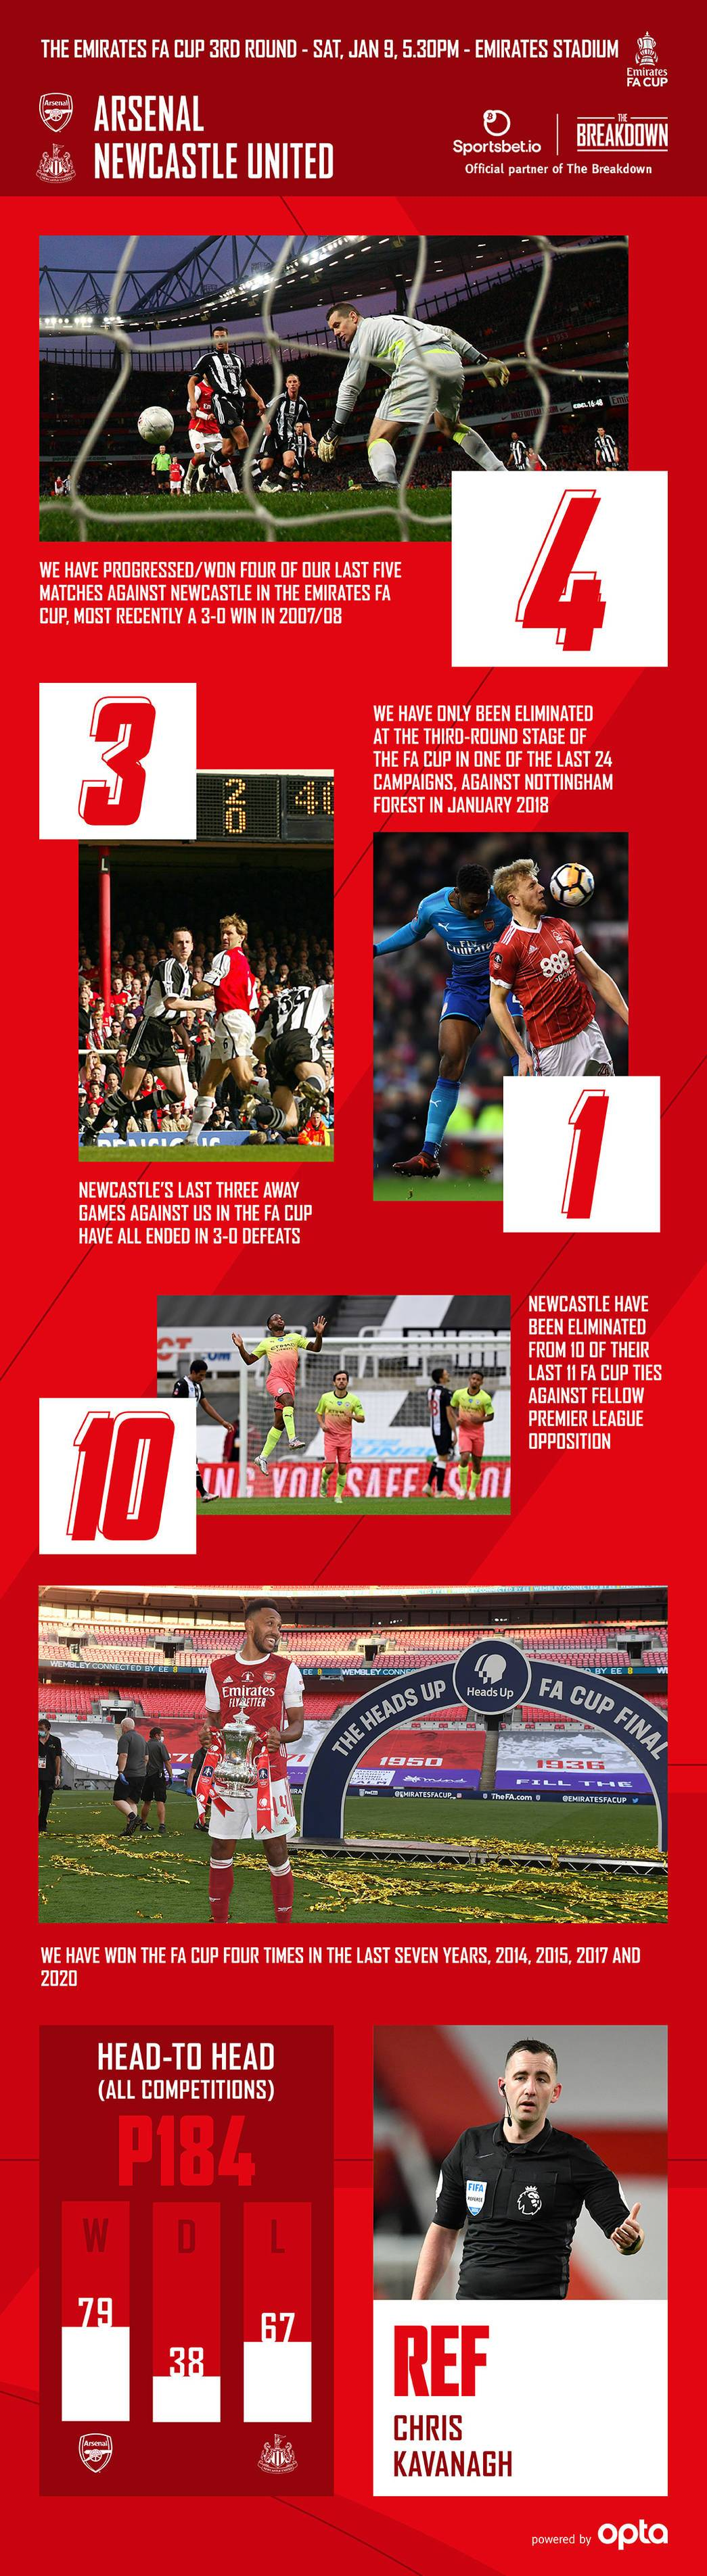 Arsenal v Newcastle: stats, quotes, infographics   Match ...